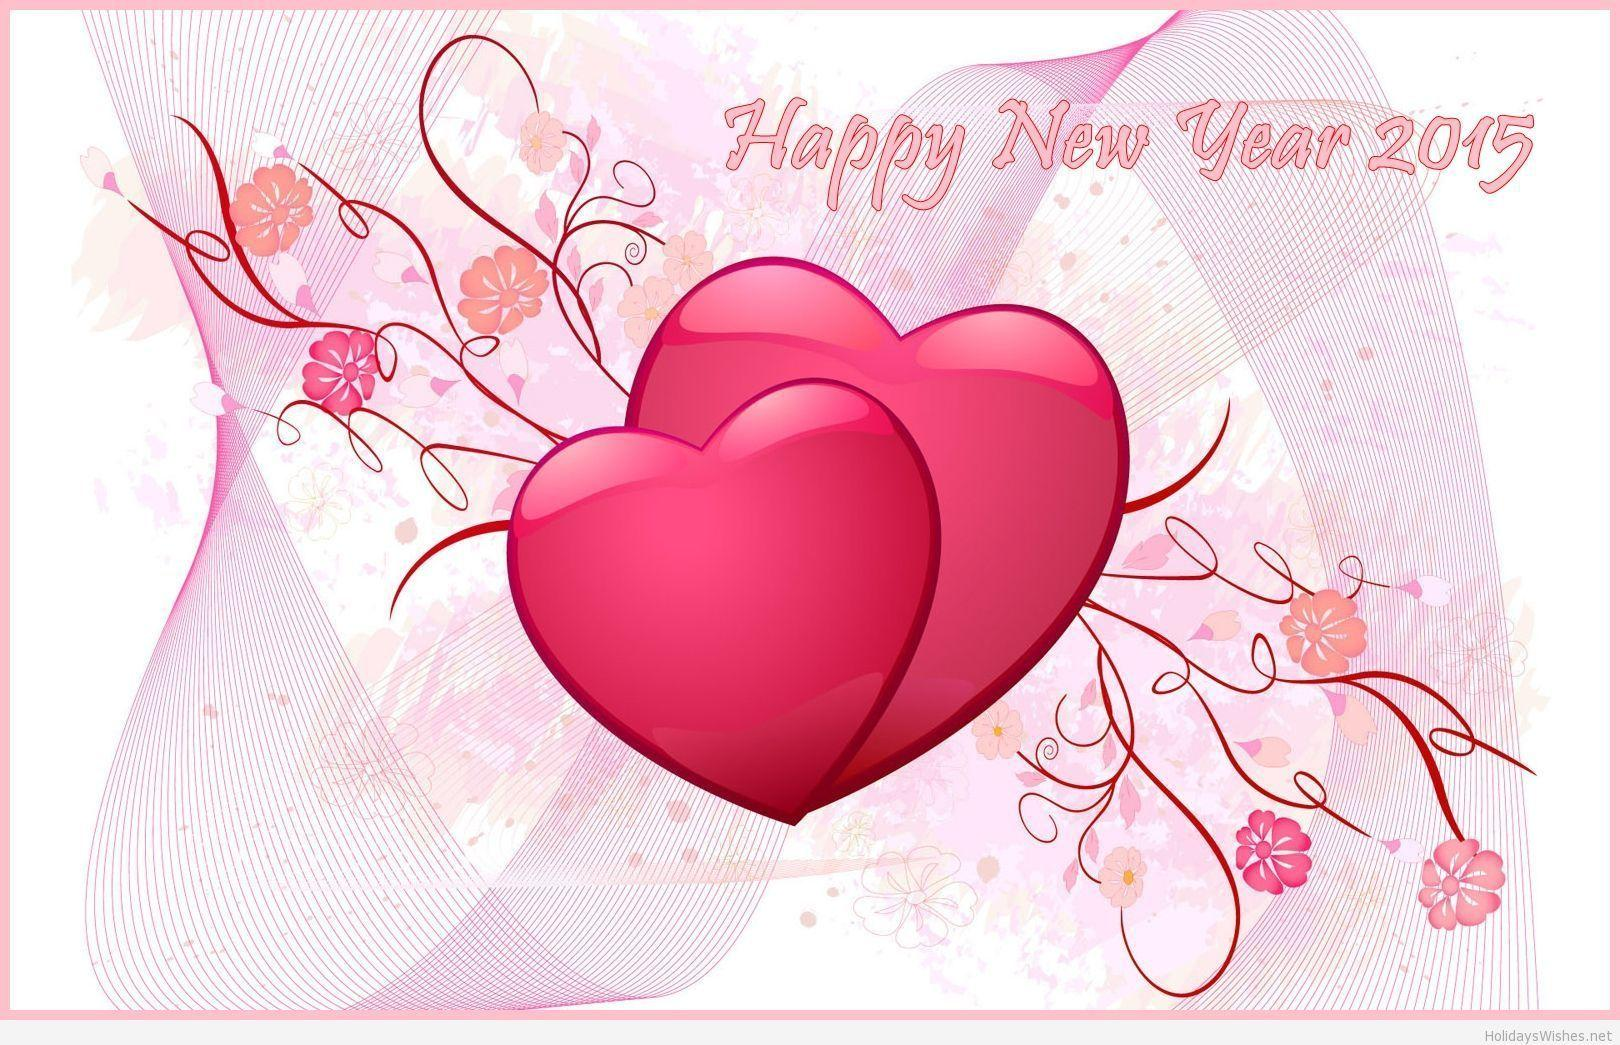 Nice love wallpapers for new year 2015